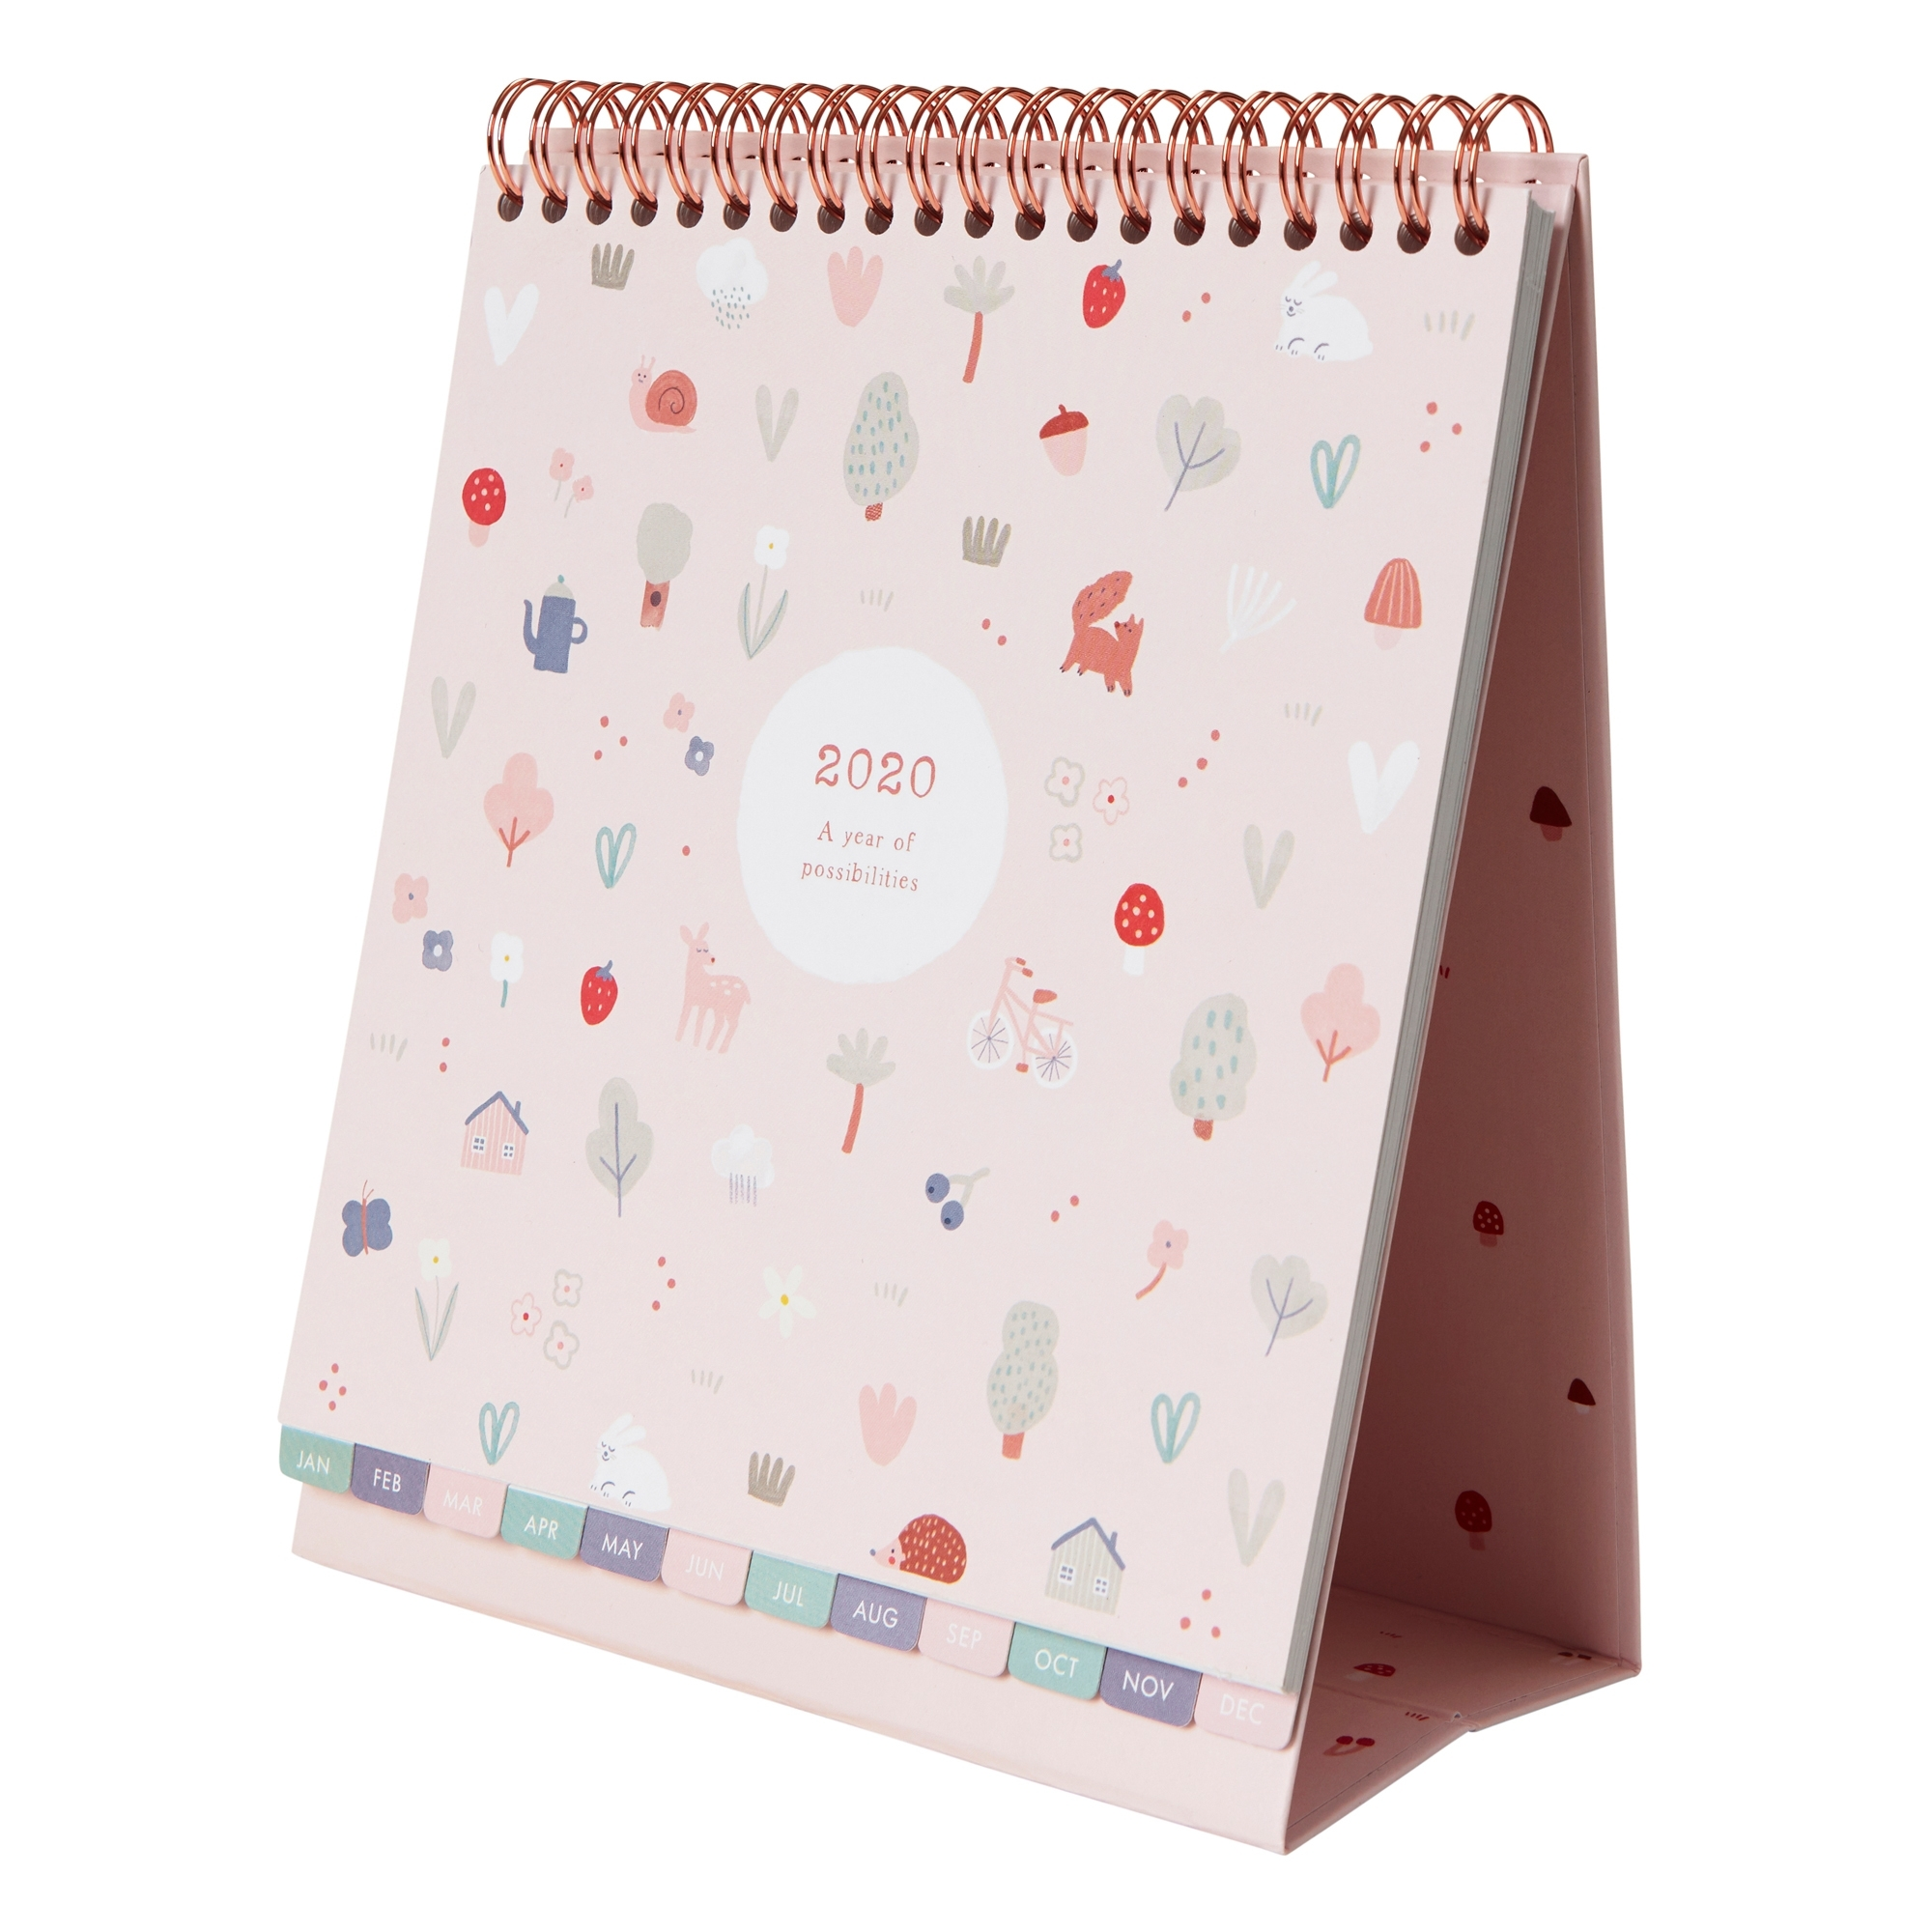 2020 Sweet Desk Calendar Pale Pink: Woodland | Calendars